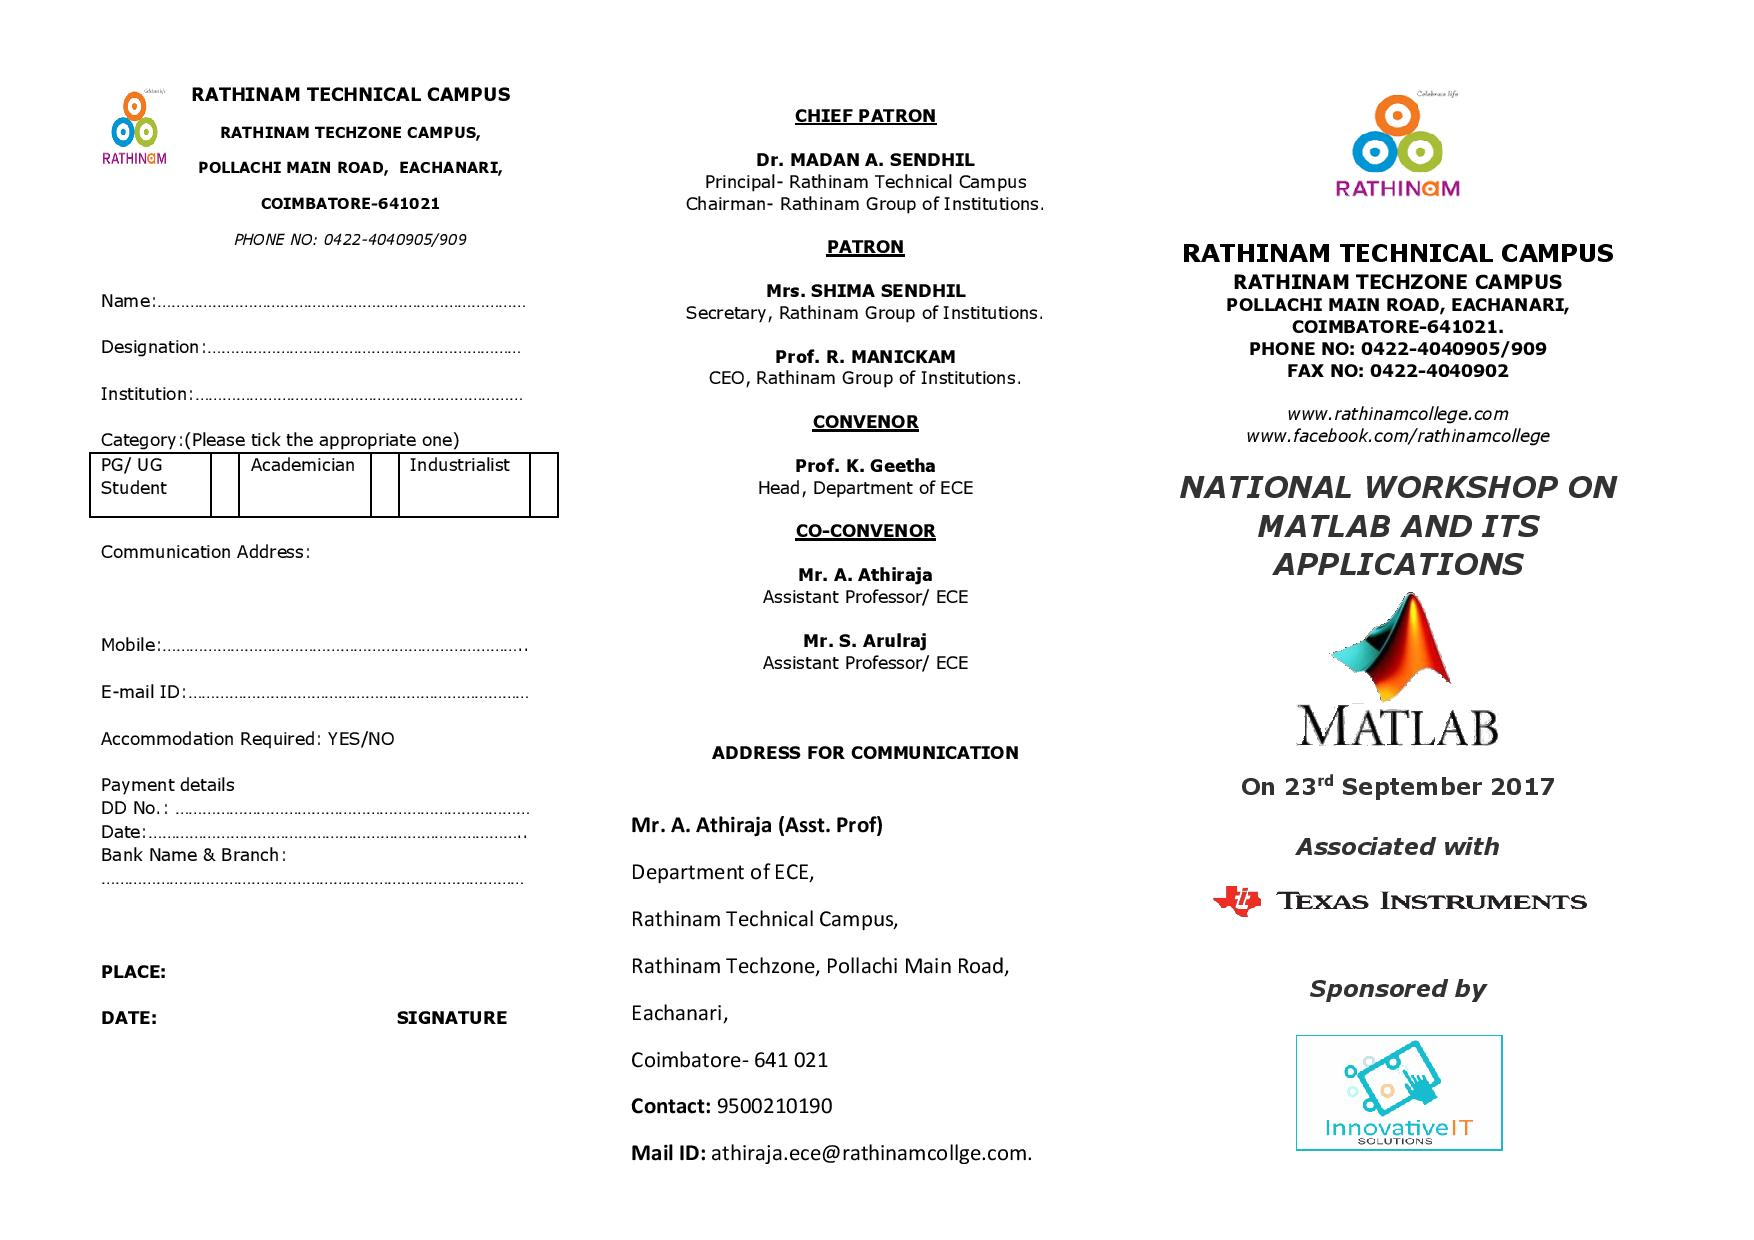 National Workshop on Matlab and its Applications 2017